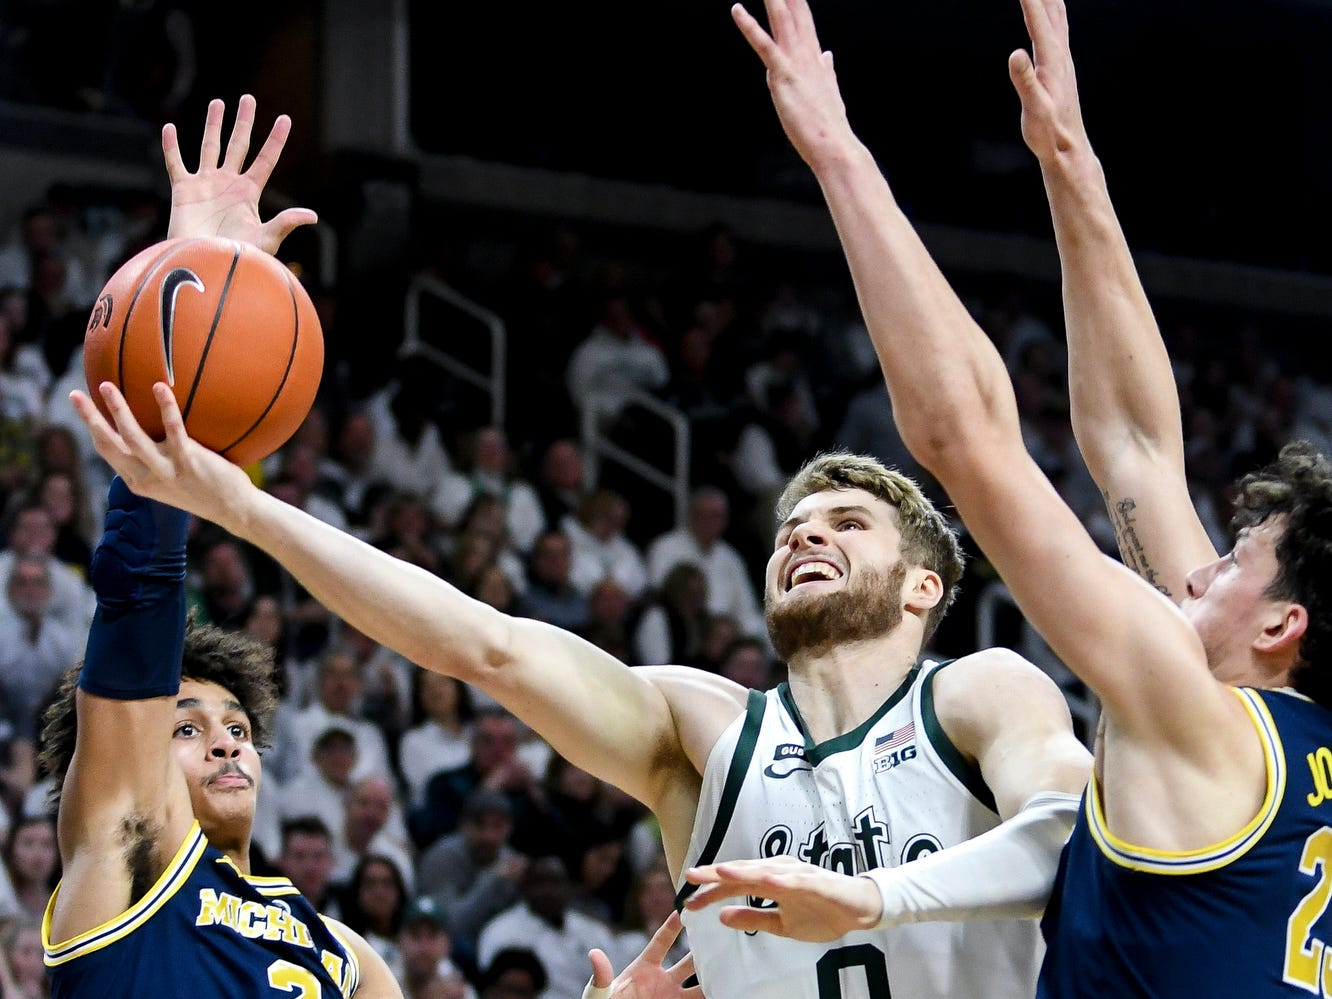 Michigan State's Kyle Ahrens, center, makes a basket between Michigan's Jordan Poole, left, and Brandon Johns Jr. during the first half on Saturday, March 9, 2019, at the Breslin Center in East Lansing.